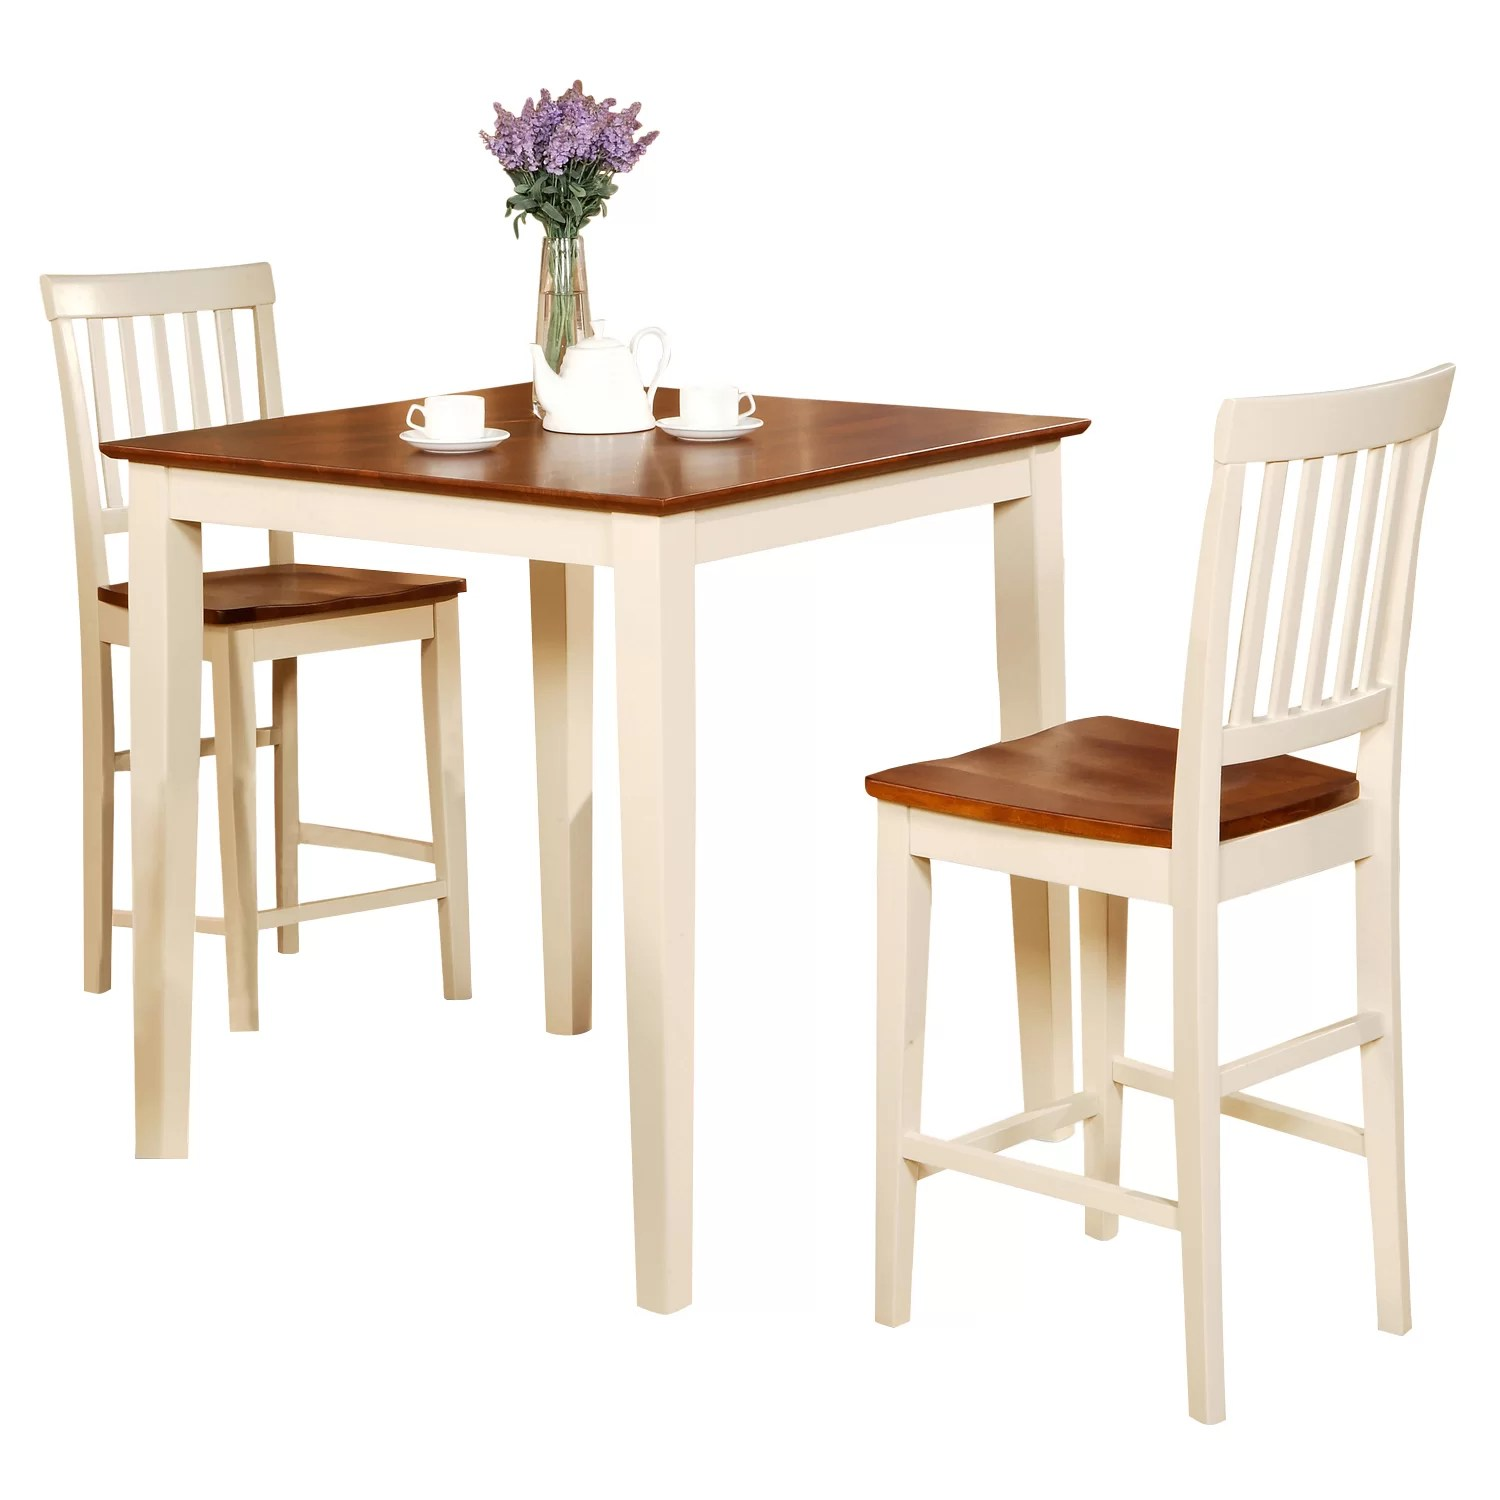 3 piece kitchen set replace countertop wooden importers vernon counter height dining